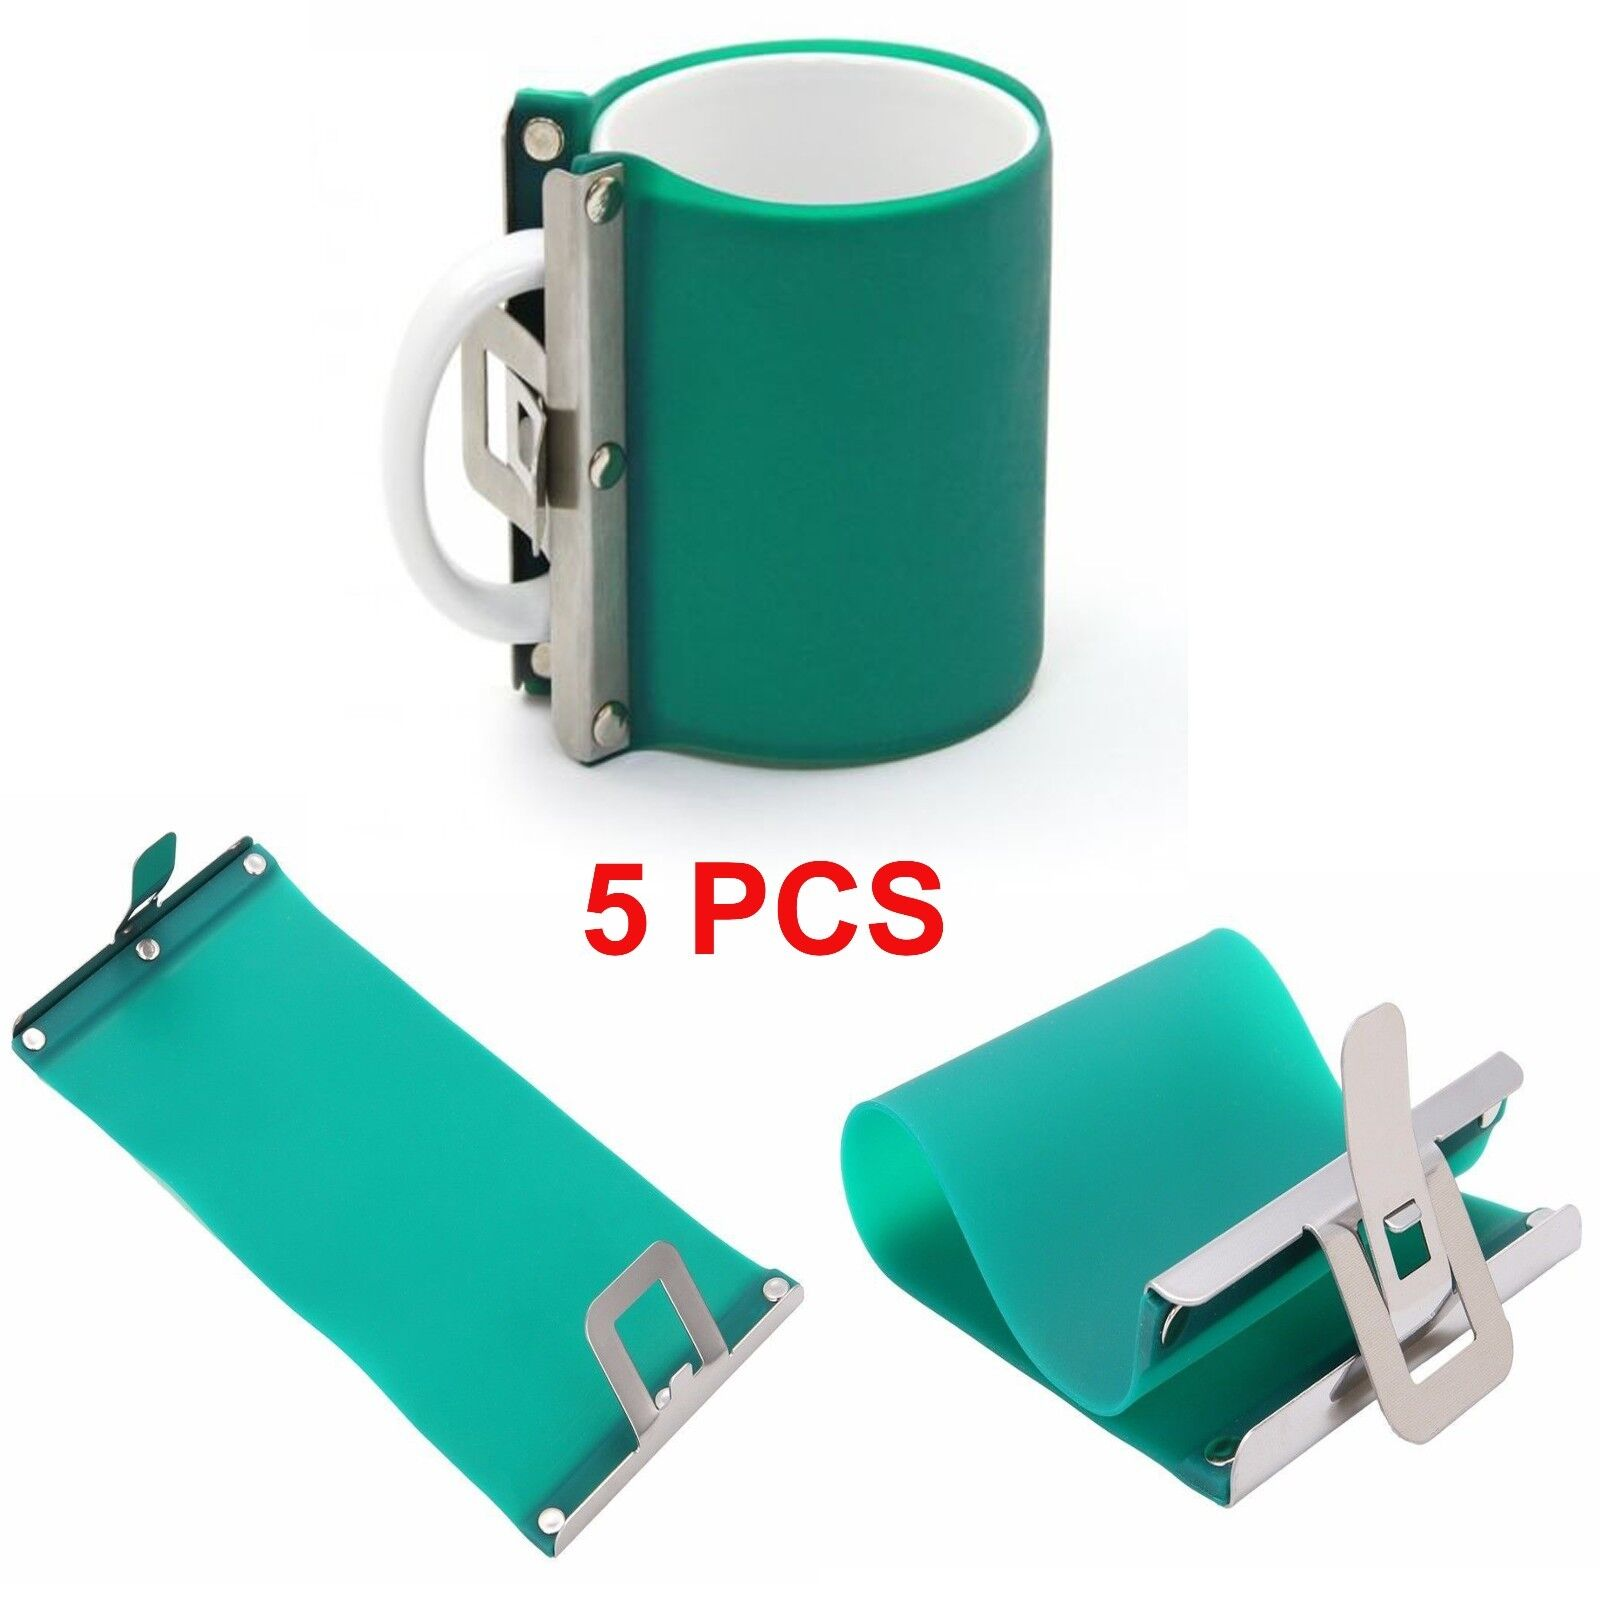 5PCS 3D Sublimation Silicone Mug Wrap 11OZ Cup Clamp Fixture for Printing Mugs